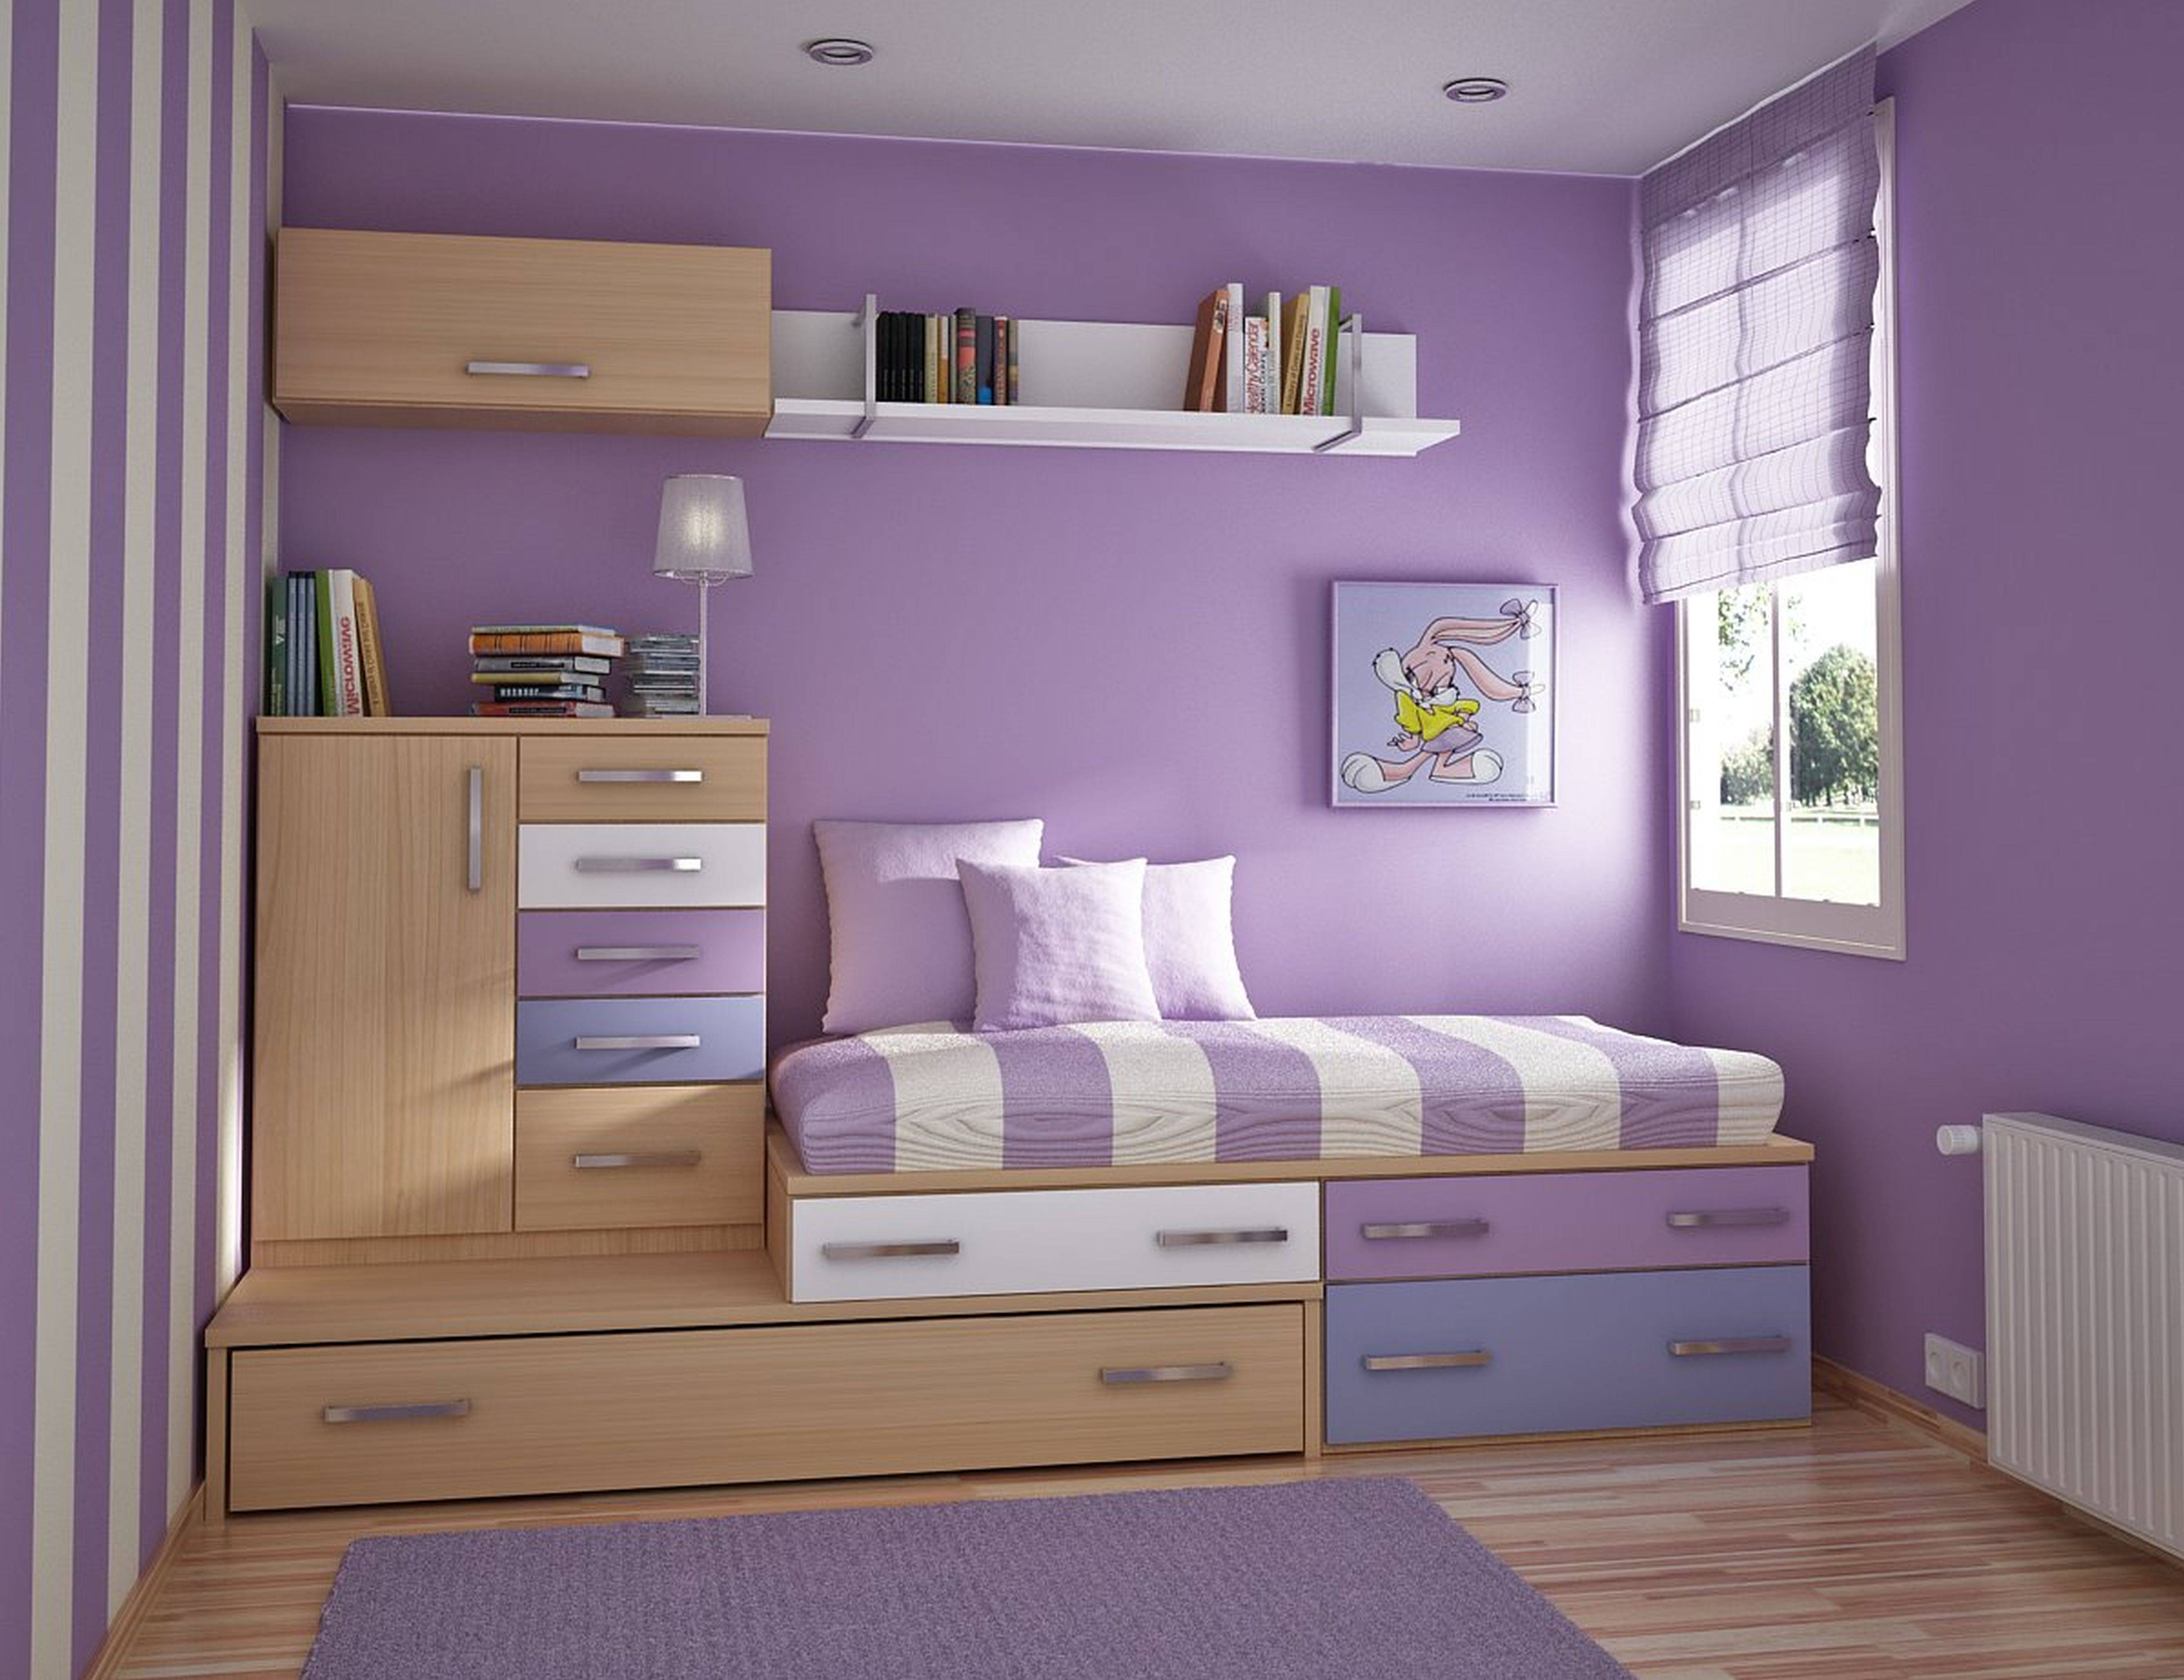 Teenage Bed Cheap Beds Ideas Tween Girl Set Small - Cute ... on Cheap Bed Ideas  id=67002